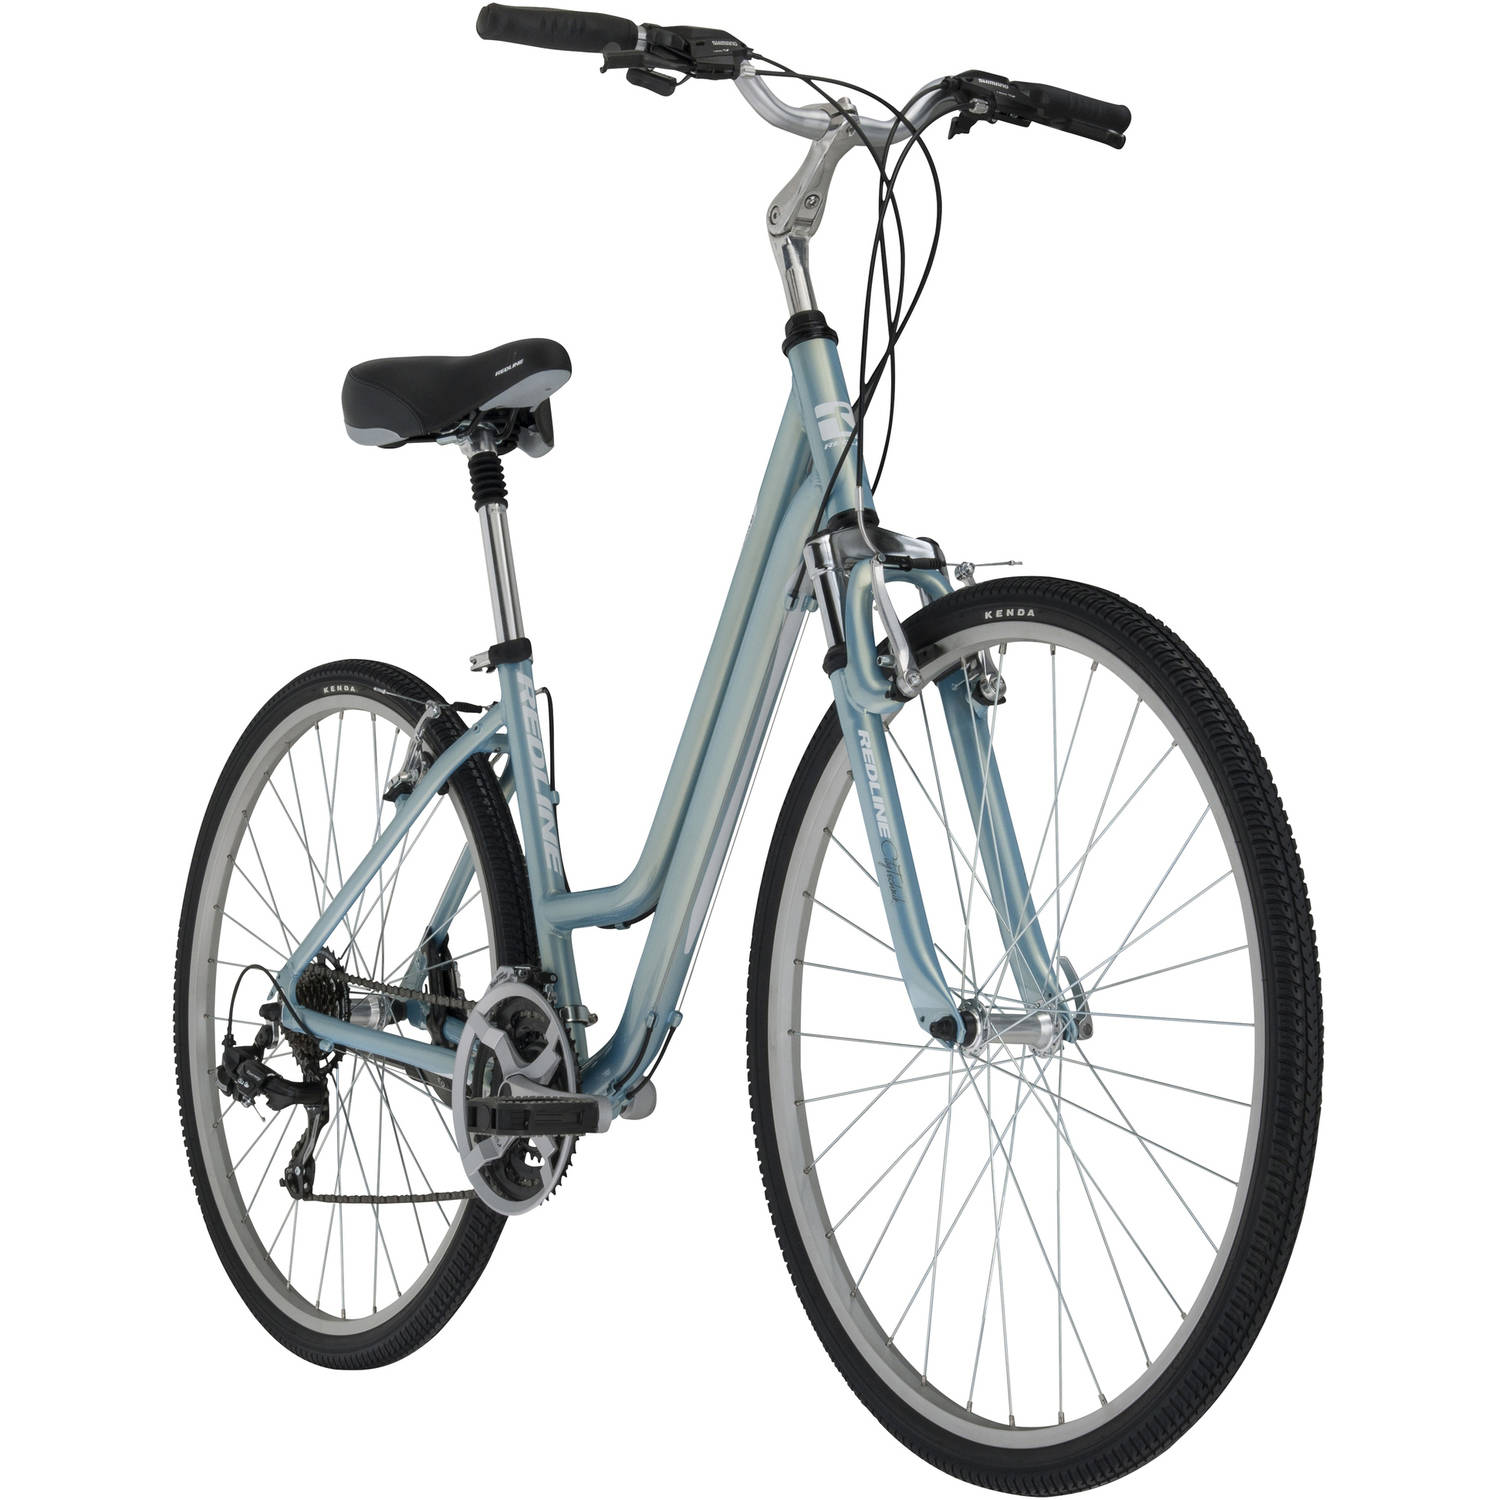 700c Redline Bikes Madrona Women's Specific Hybrid Bike, Light Blue